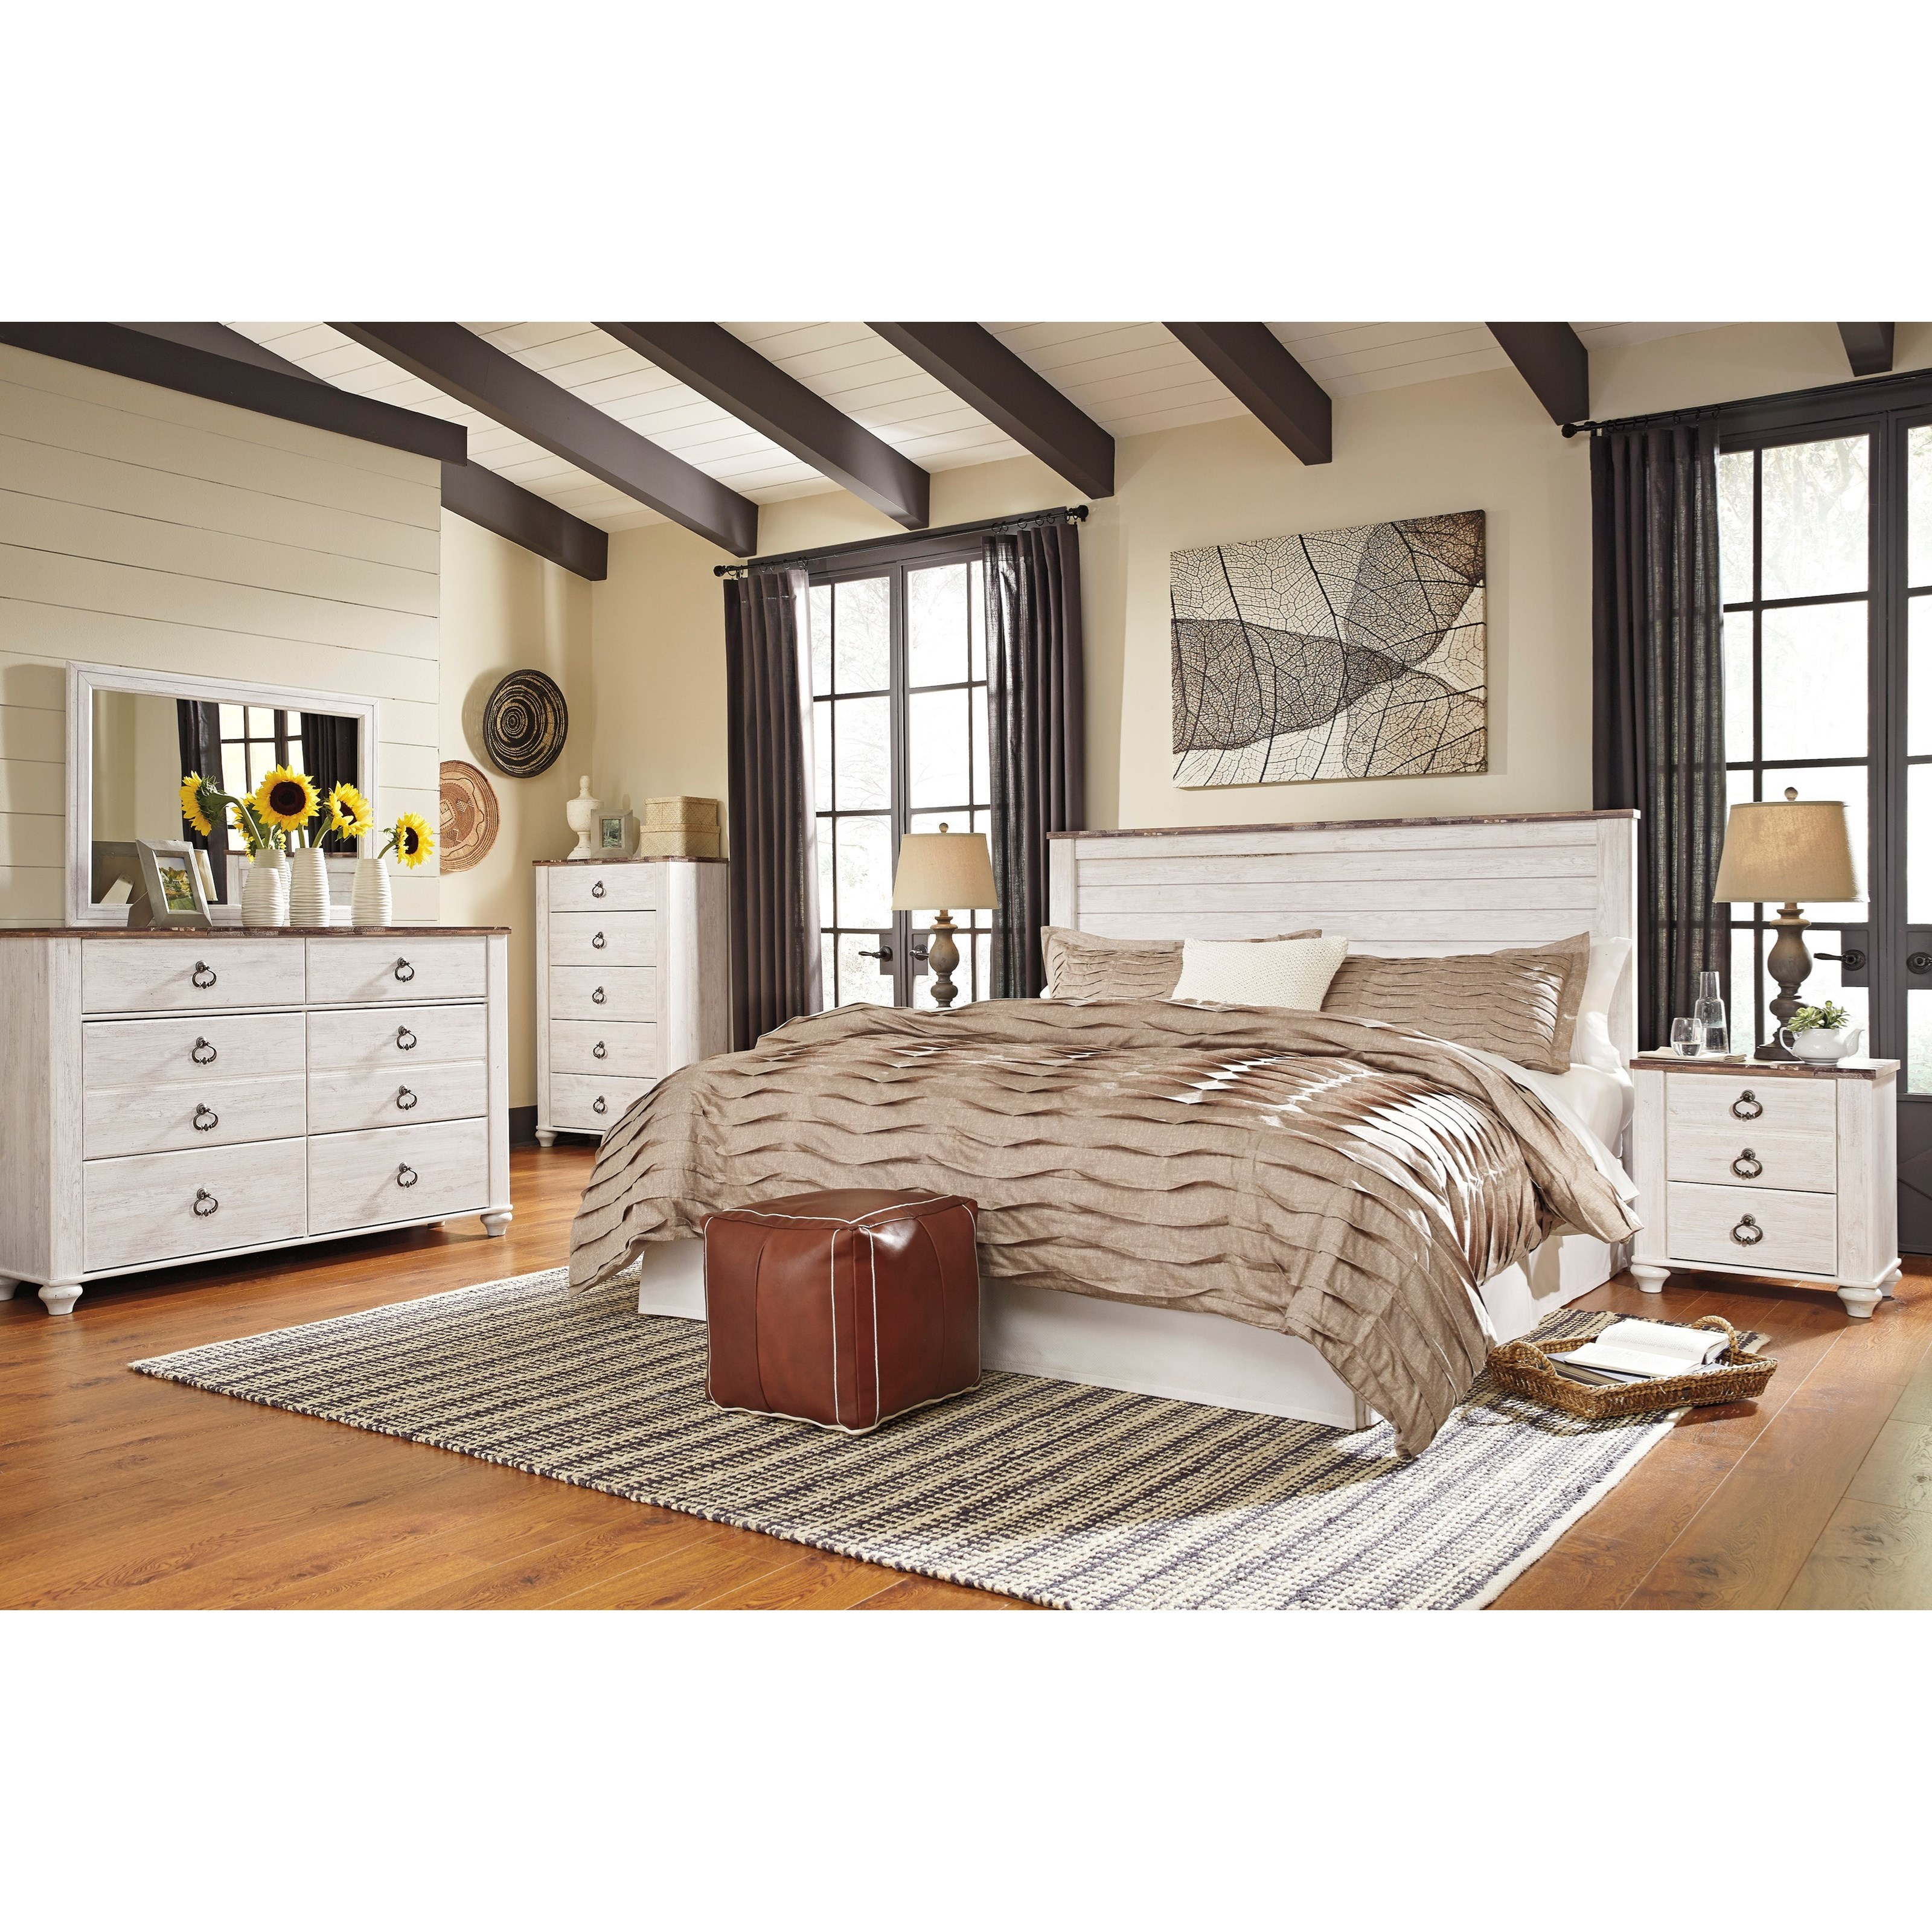 B705 58 Ck Ashley Furniture California King Sleigh Bed: Signature Design By Ashley Willowton B267-58 King/Cal King